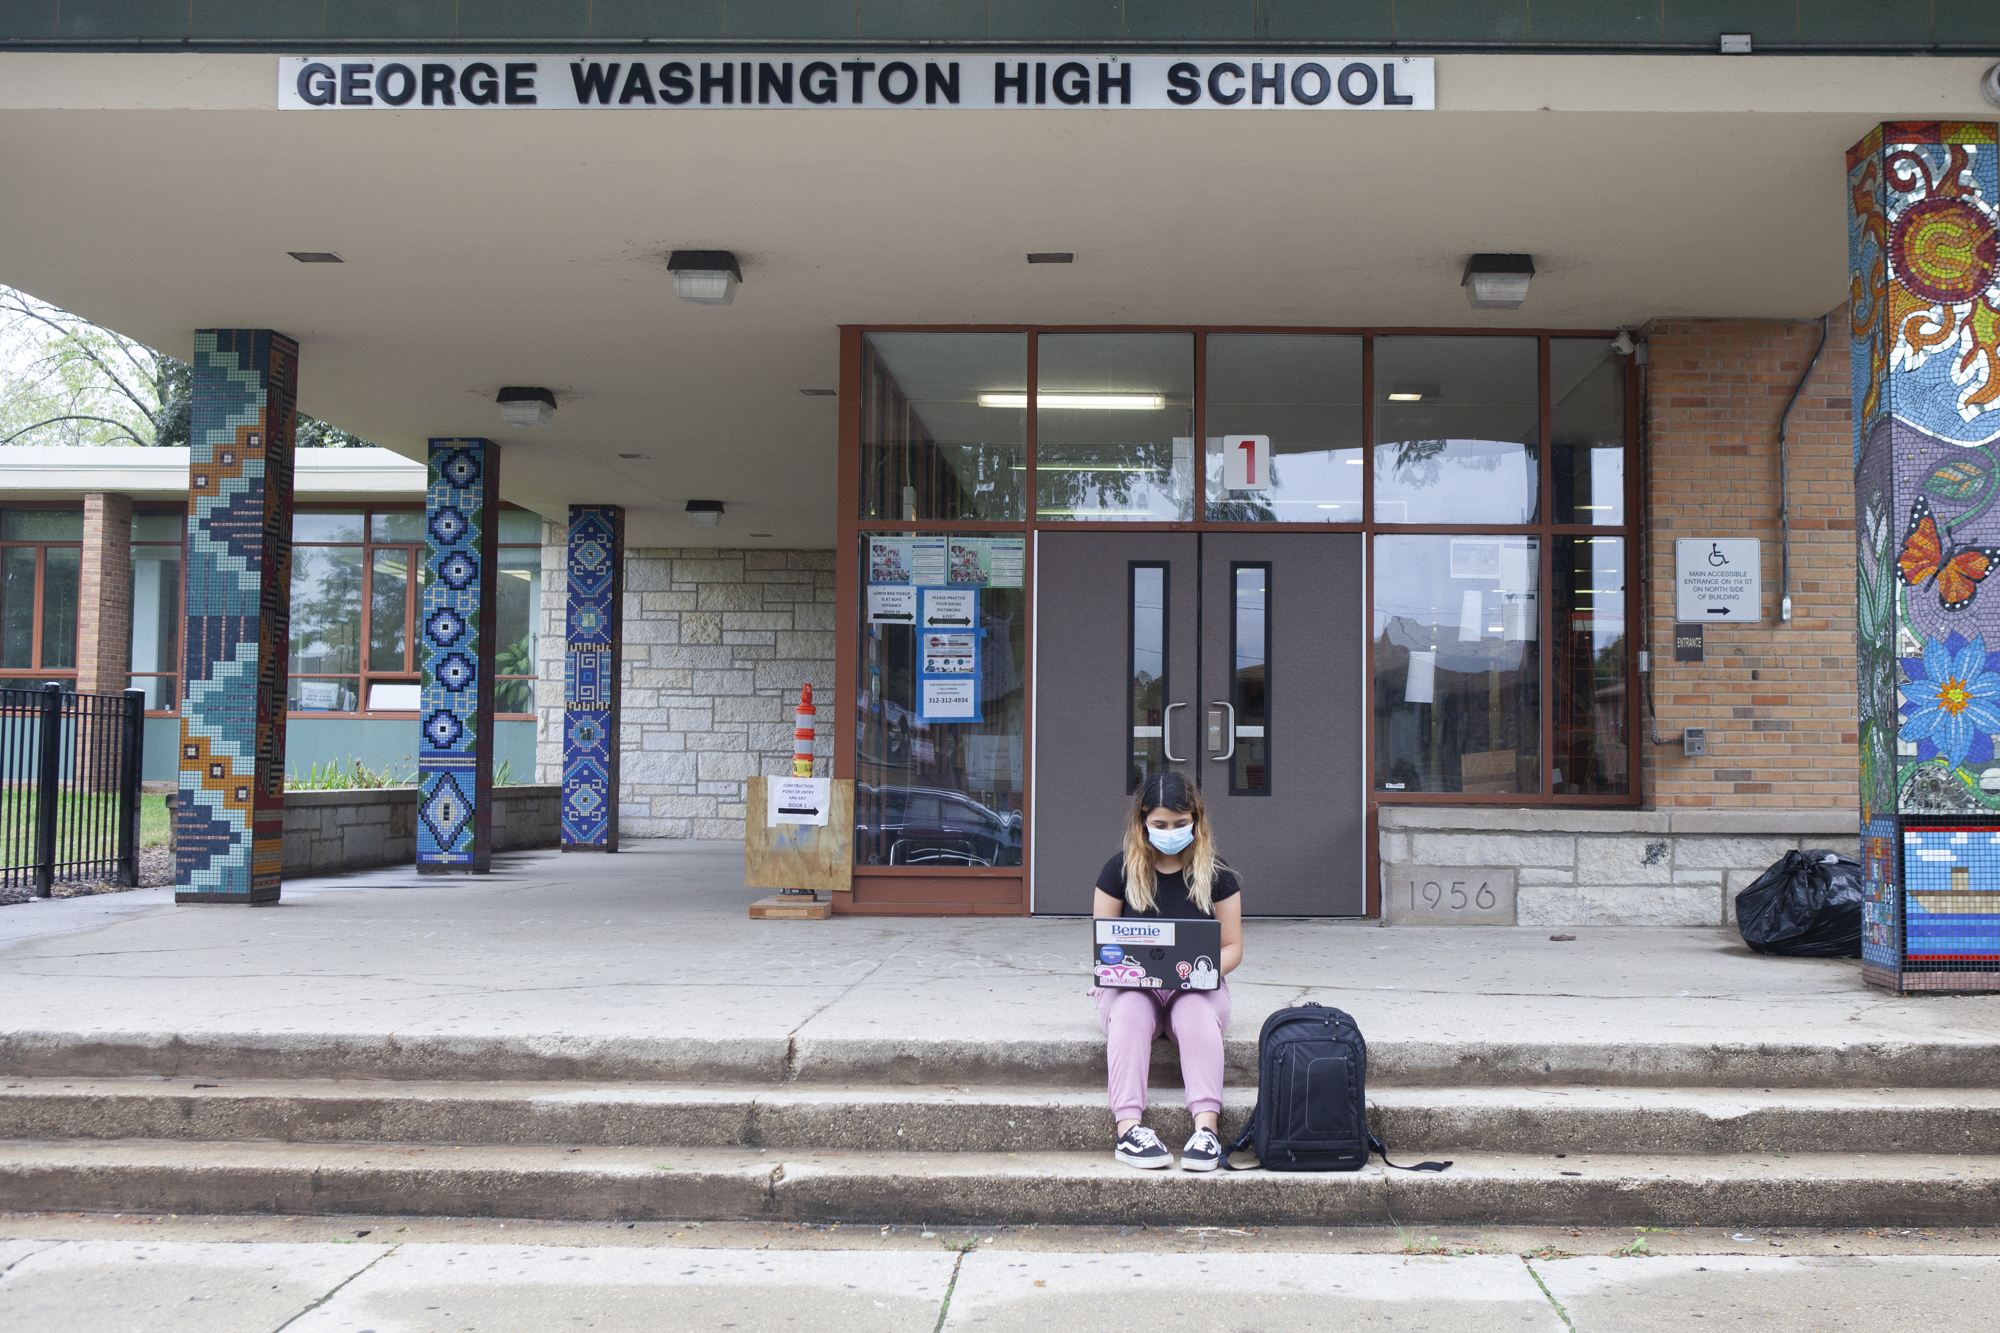 Trinity sitting on steps outside of school with her backpack and laptop.